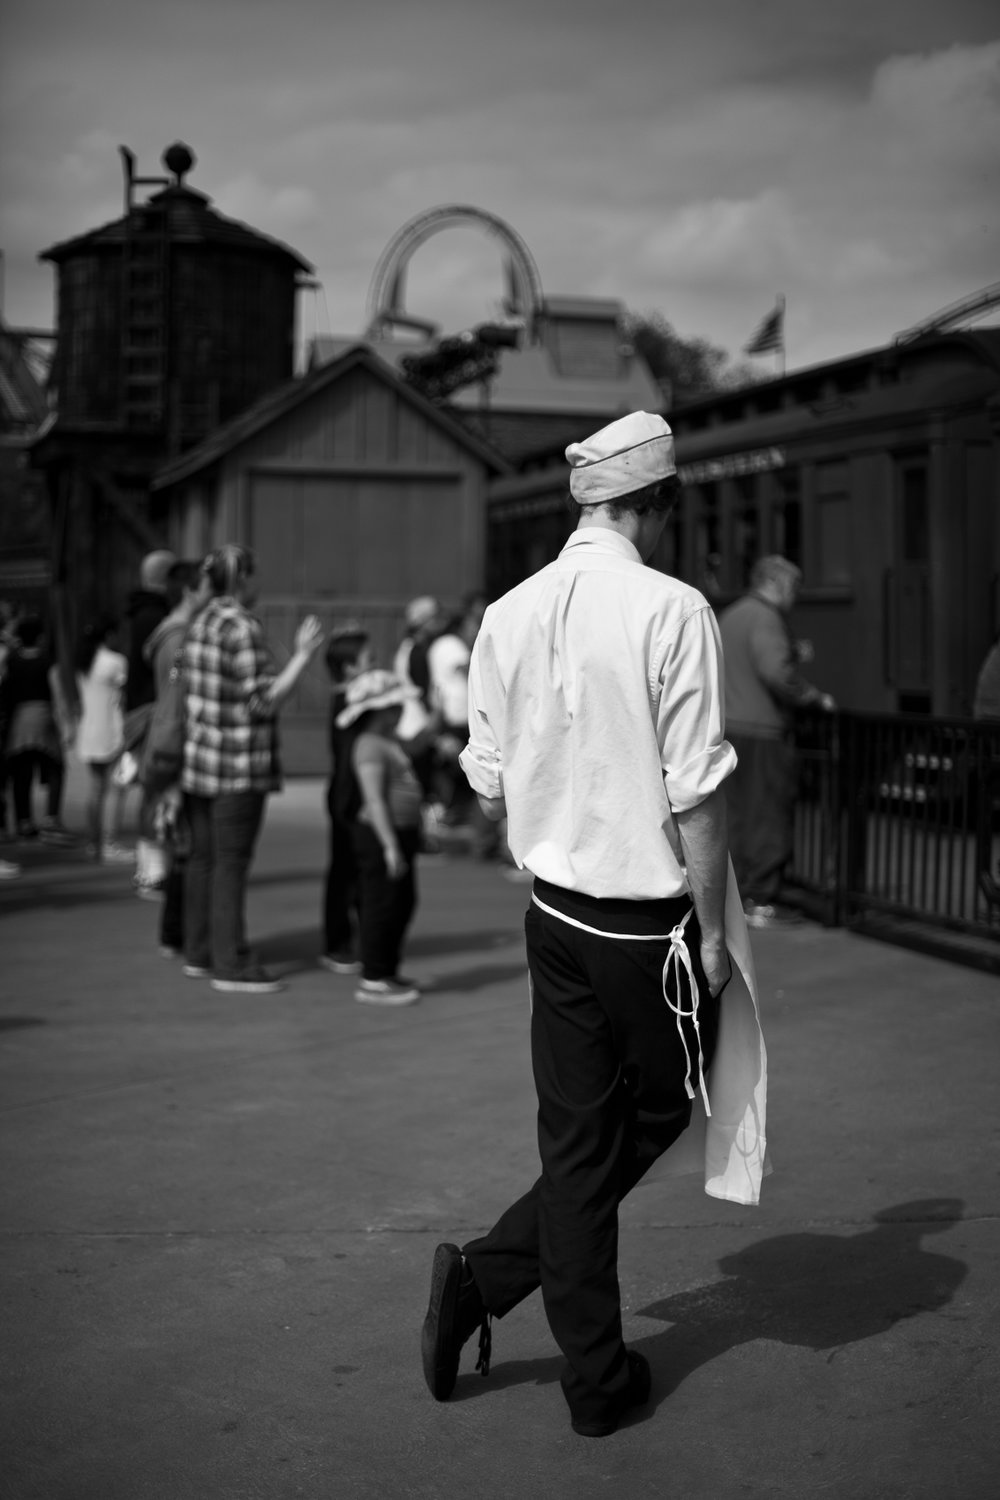 _MG_2764 WEBSITE CANDIDS-STREET 1st RUN  May 15, 2016 by Chudo Nomi.jpg